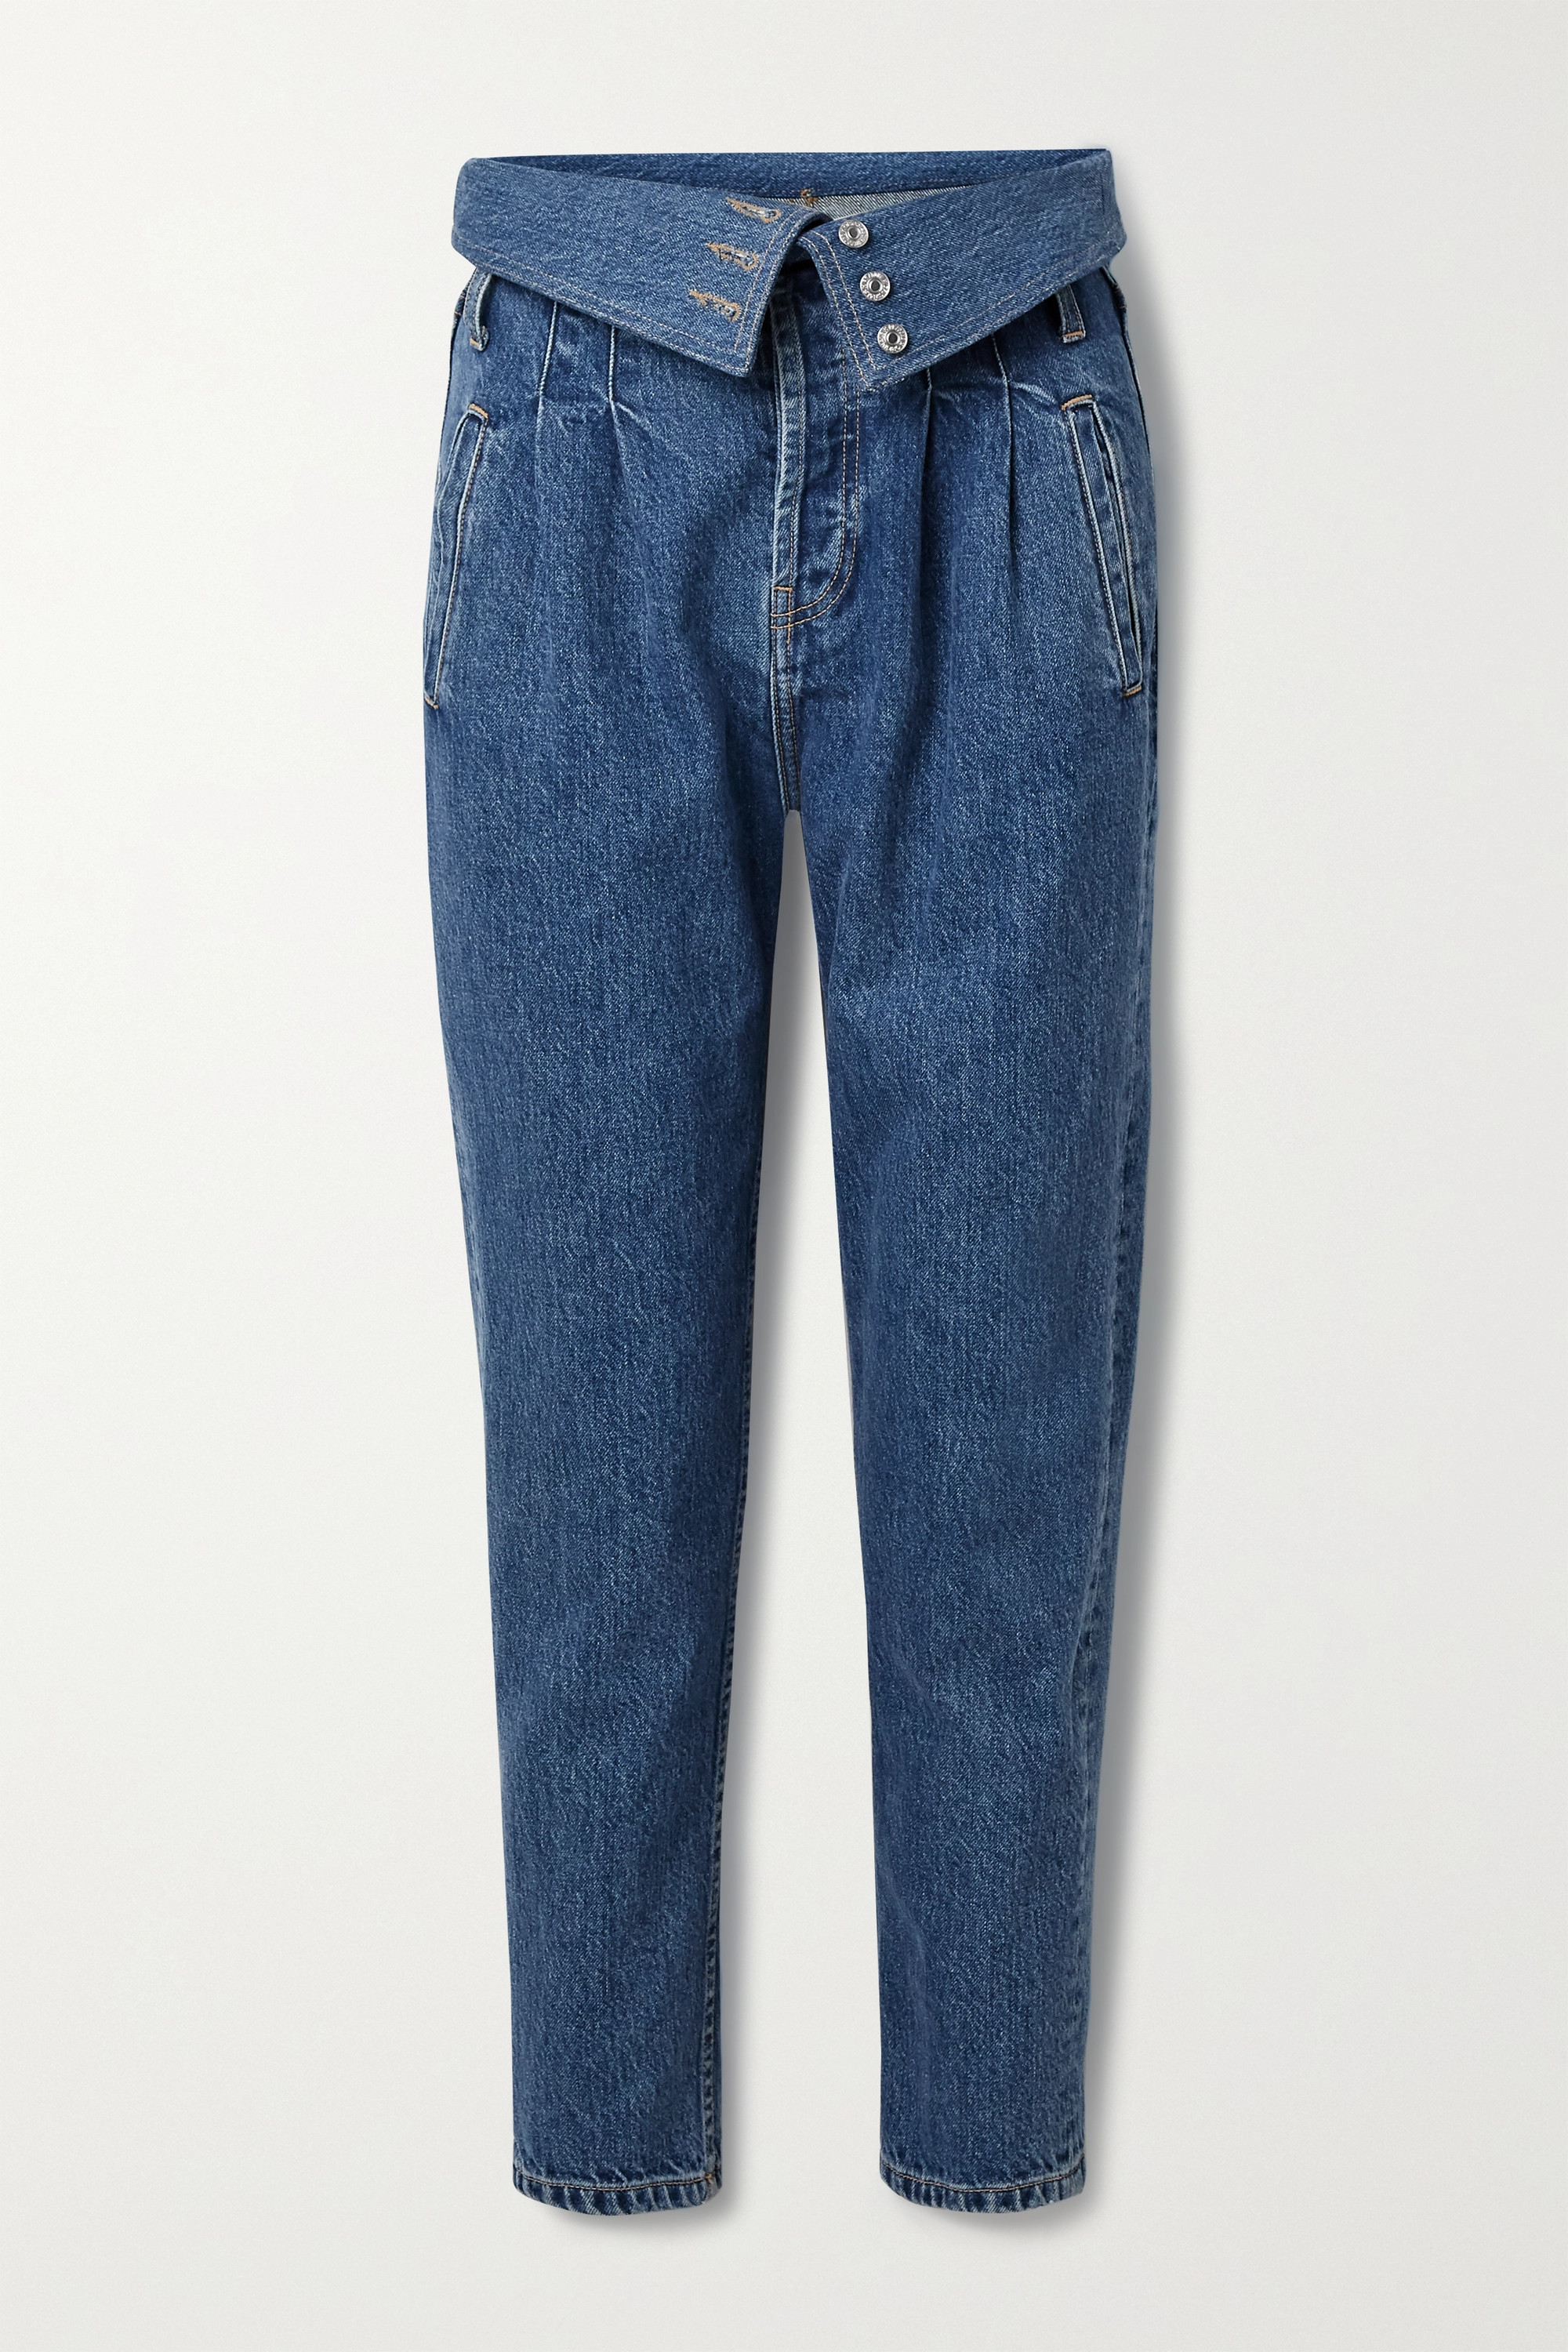 RE/DONE - 80s fold-over high-rise tapered jeans